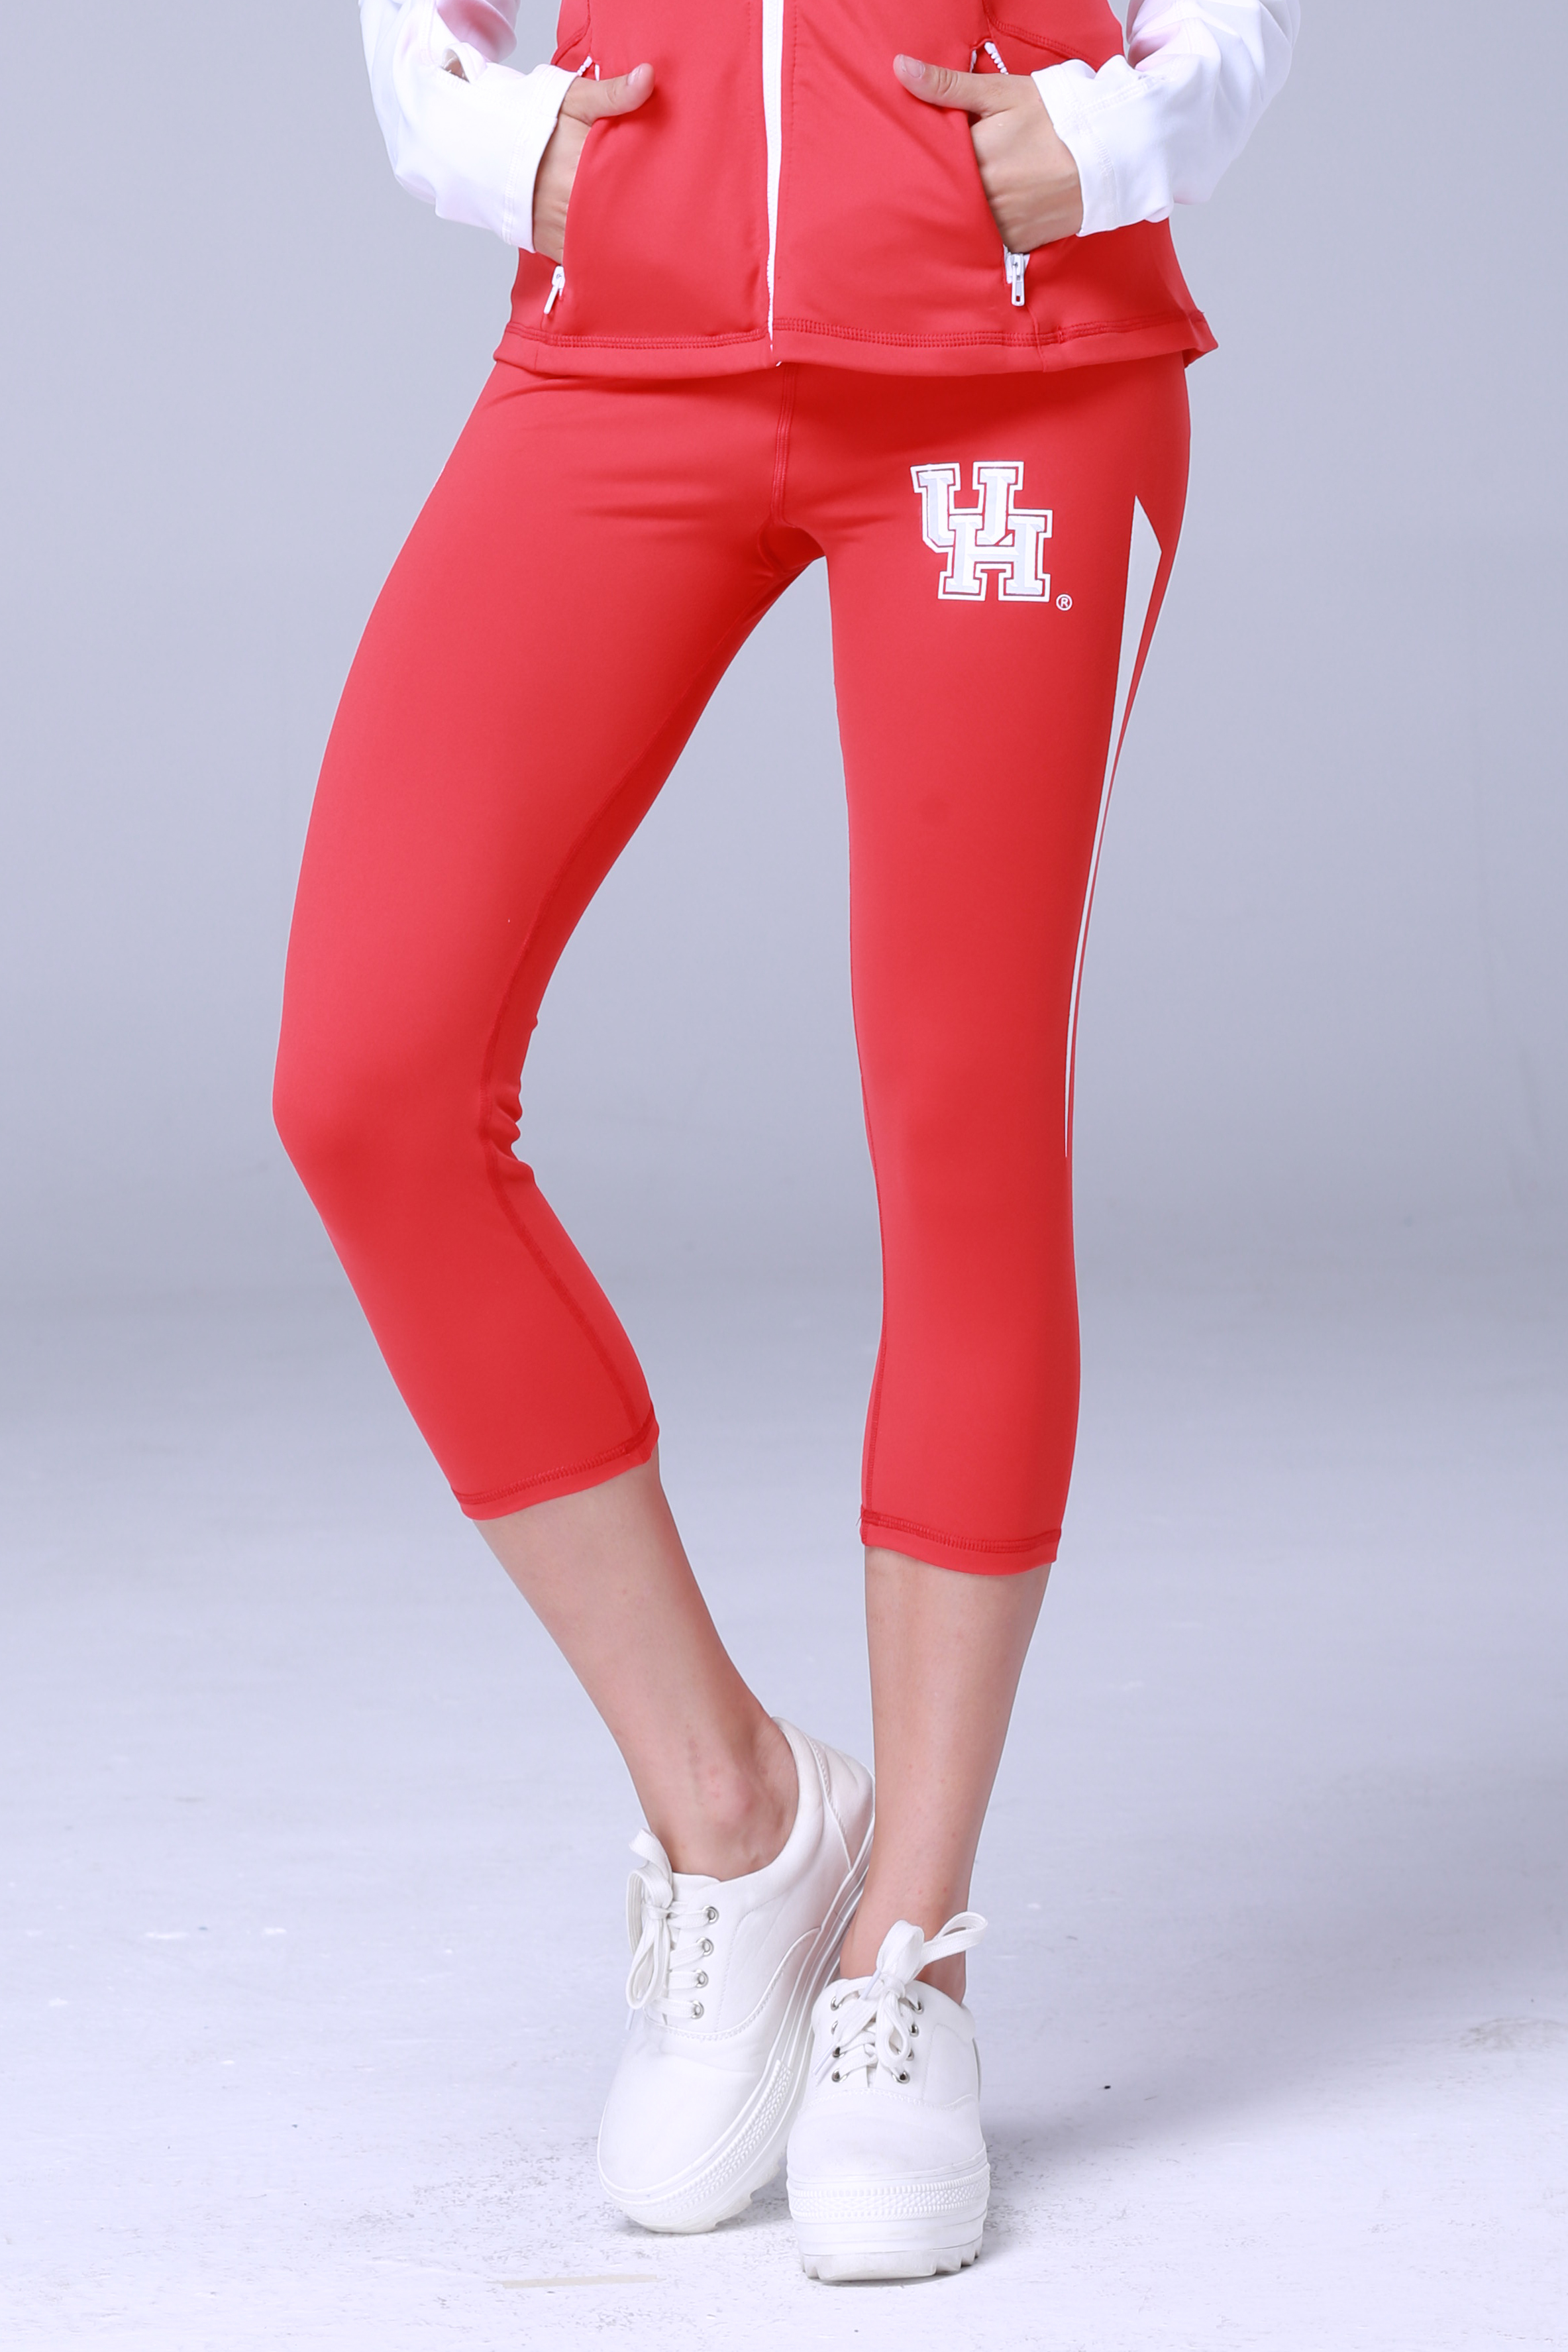 Houston Cougars Womens Yoga Capri Pant (Red)